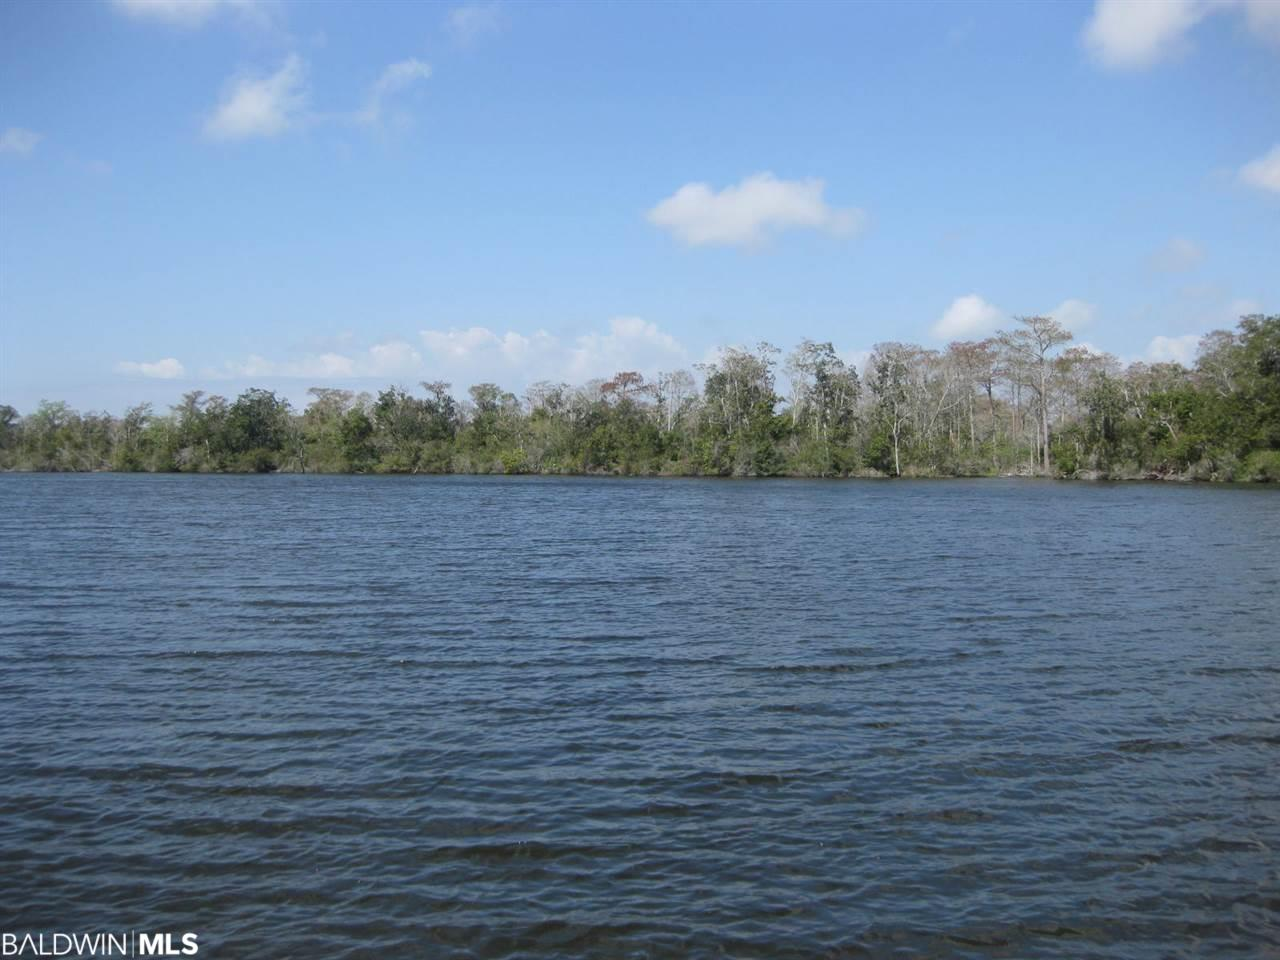 BUILD YOUR HOME ON THIS PRISTINE WATERFRONT PROPERTY ON FISH RIVER. PROPERTY HAS APPROXIMATELY 38+ ACRES WITH APPROXIMATELY 300+/- ON THE WIDE PART OF THE RIVER ABOUT TWO MILES NORTH OF WEEKS BAY.  HOME ON PROPERTY IS BEING SOLD AT NO VALUE.